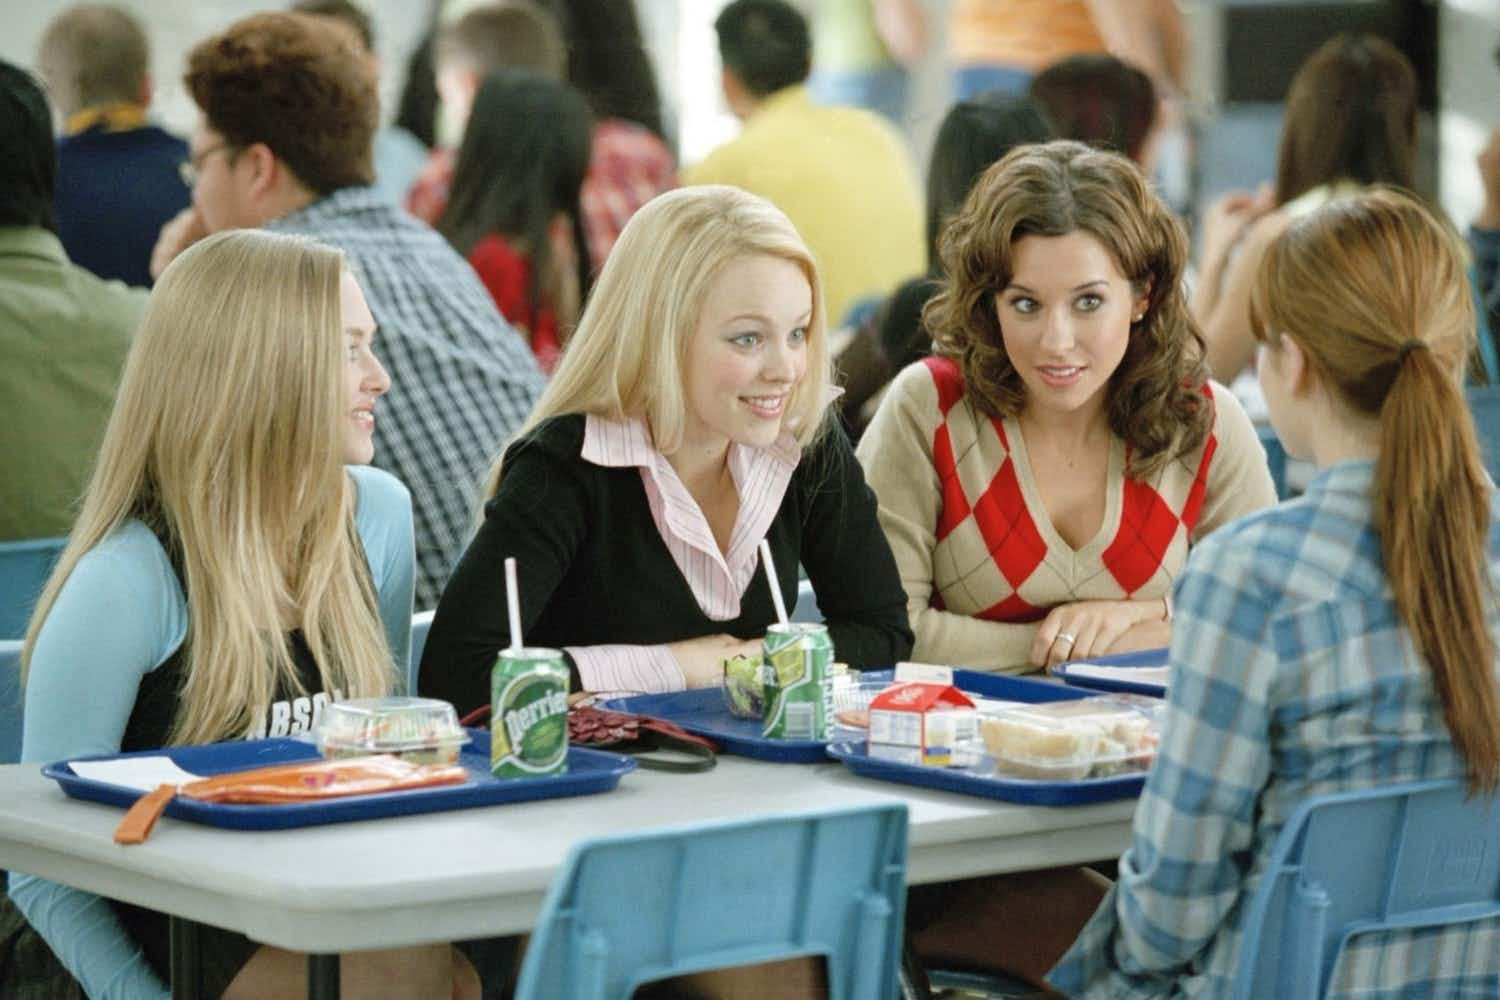 Bring your frenemies along to this Mean Girls-themed brunch in London